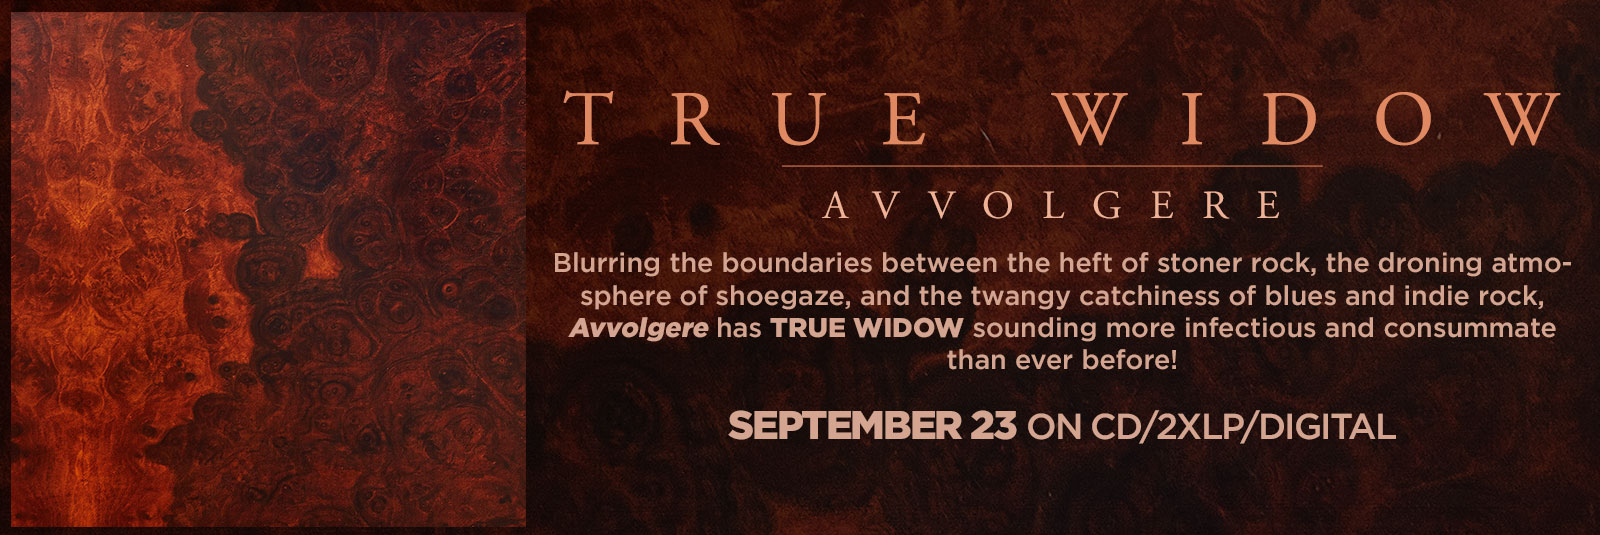 true-widow-new-album-avvolgere